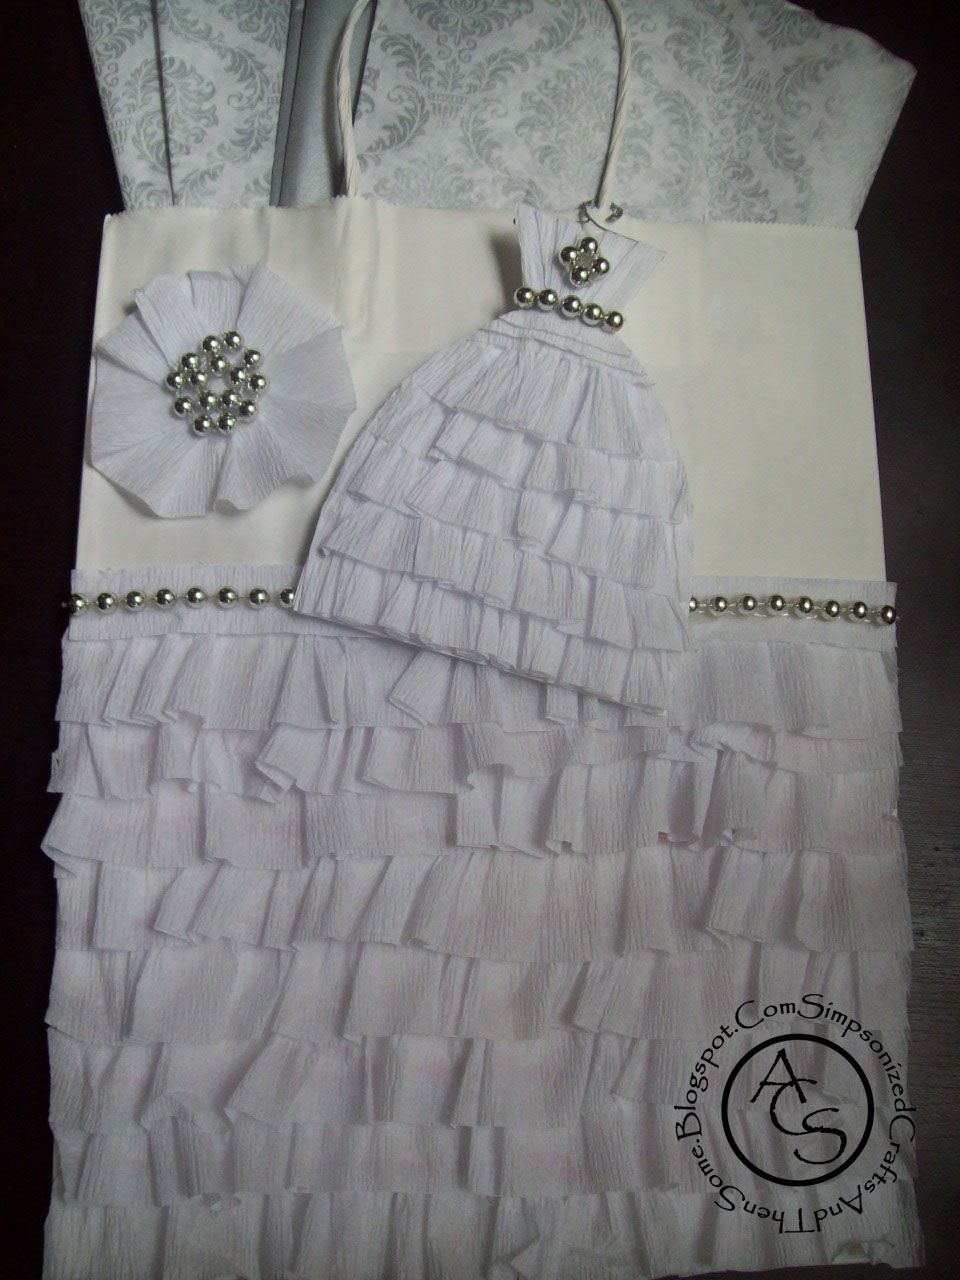 Funny Wedding Gift Bag Ideas : ... gift turns out to be a bummer, at least she has this bag and card! lol